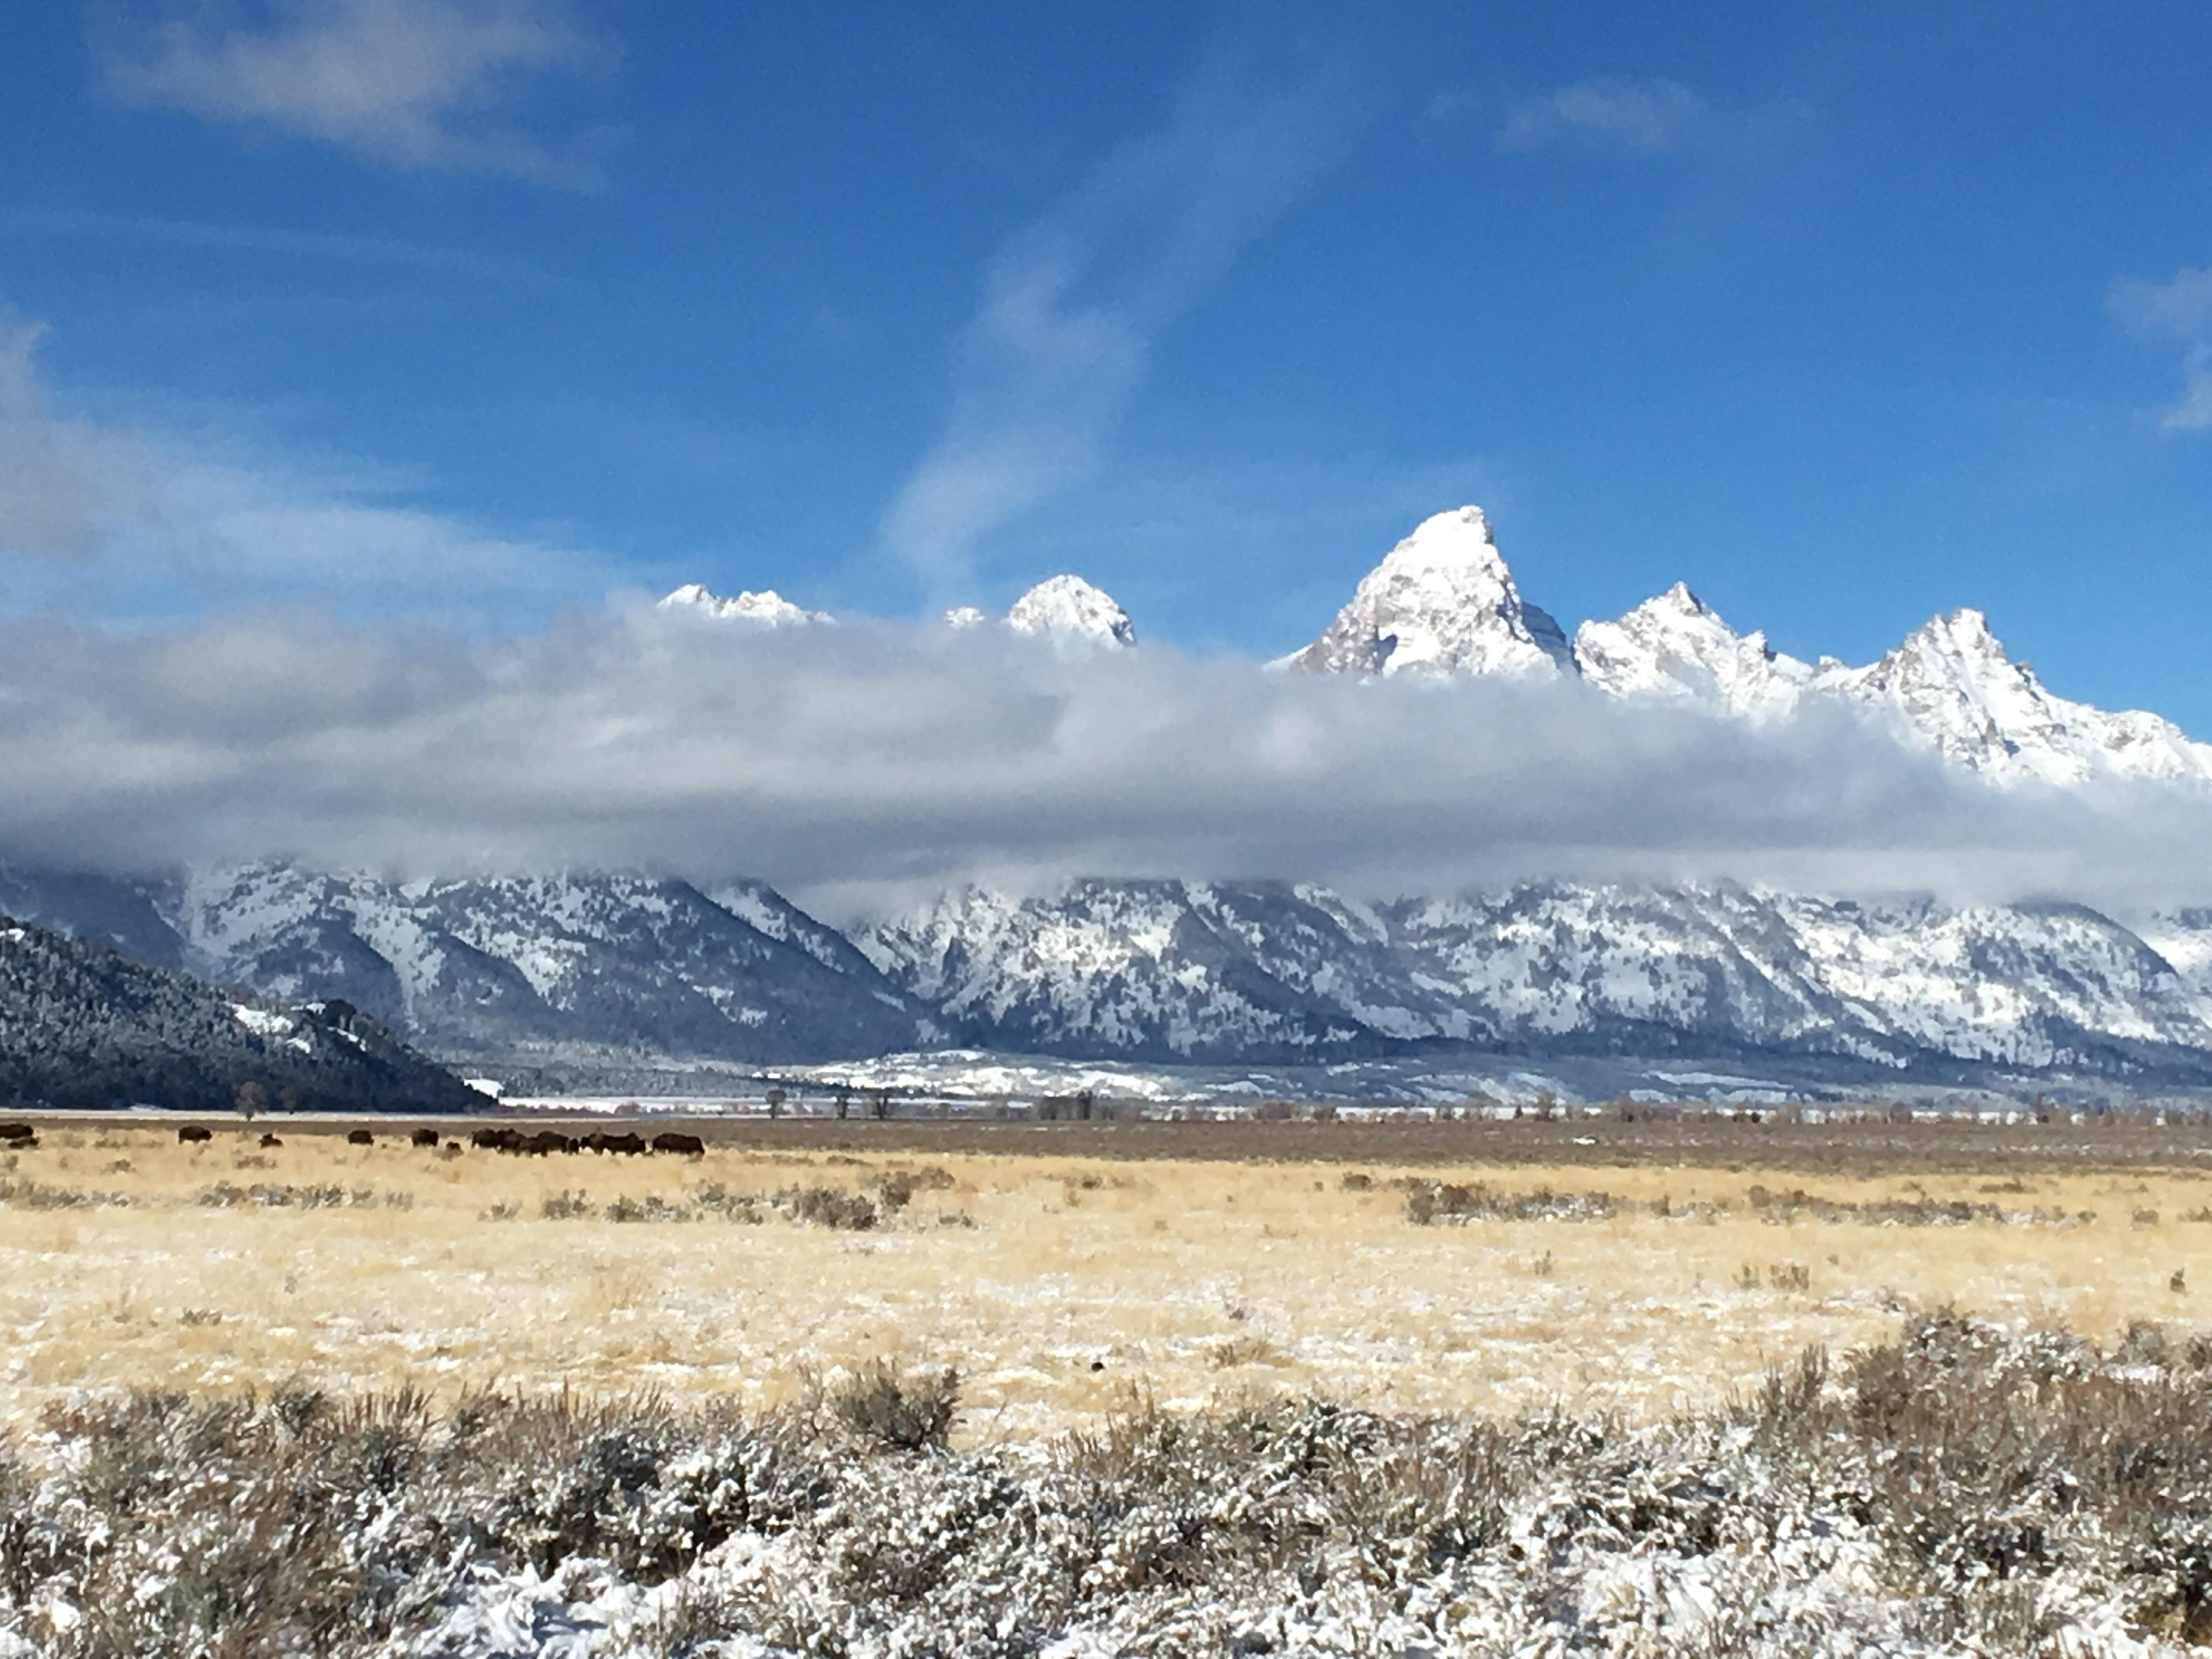 The Tetons with Bison in the foreground.